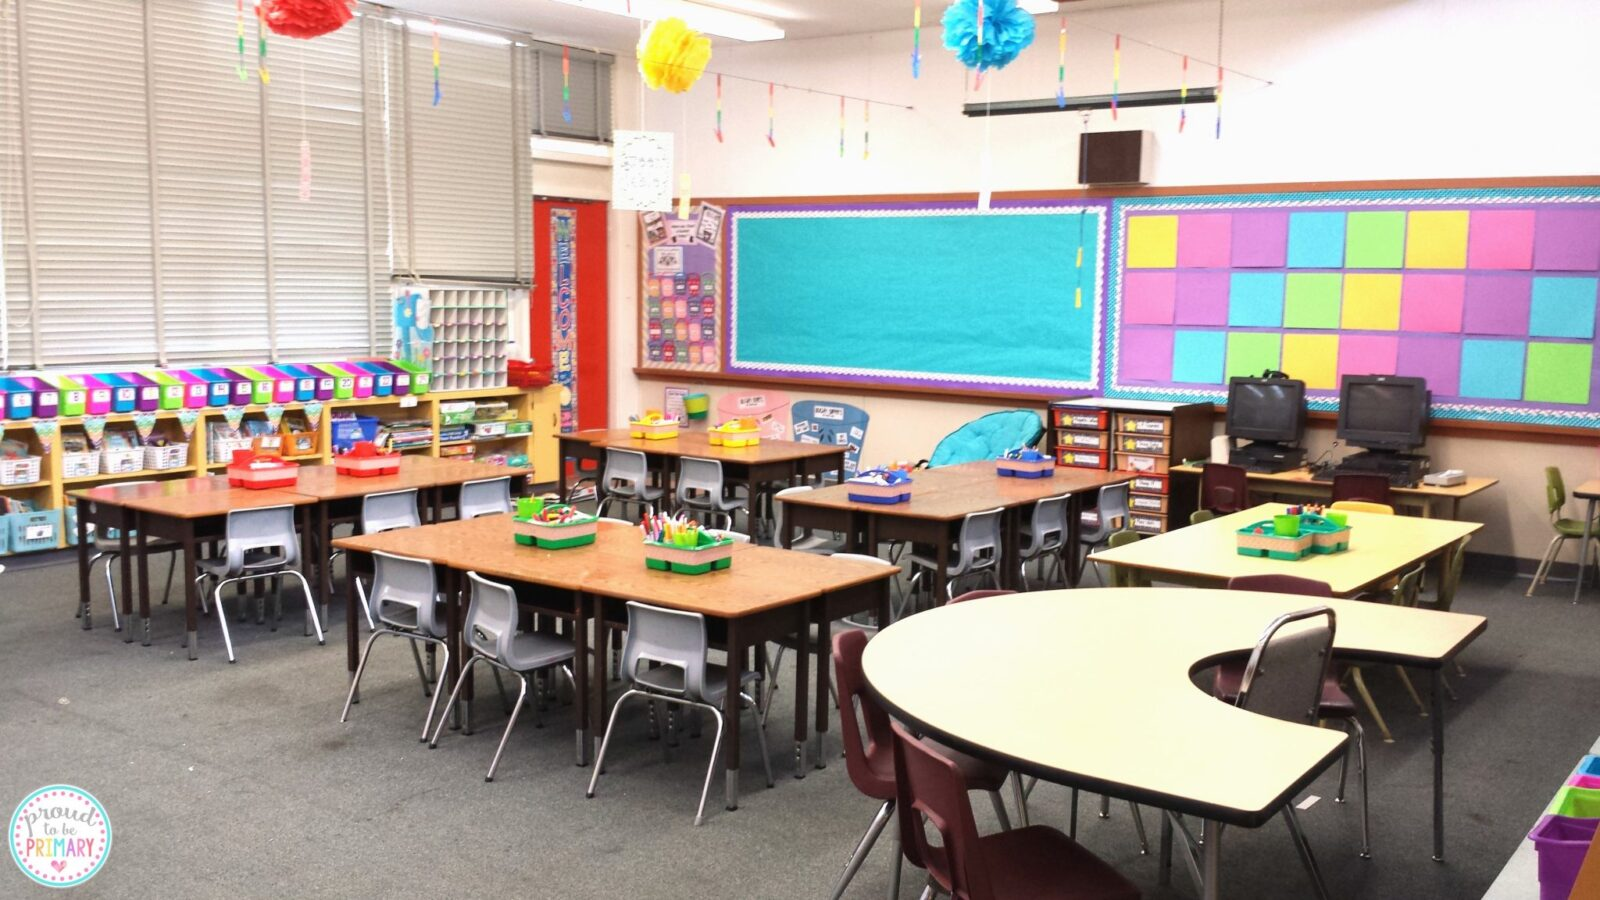 Classroom Design And Organization Ideas ~ First week of school teacher tips you must remember